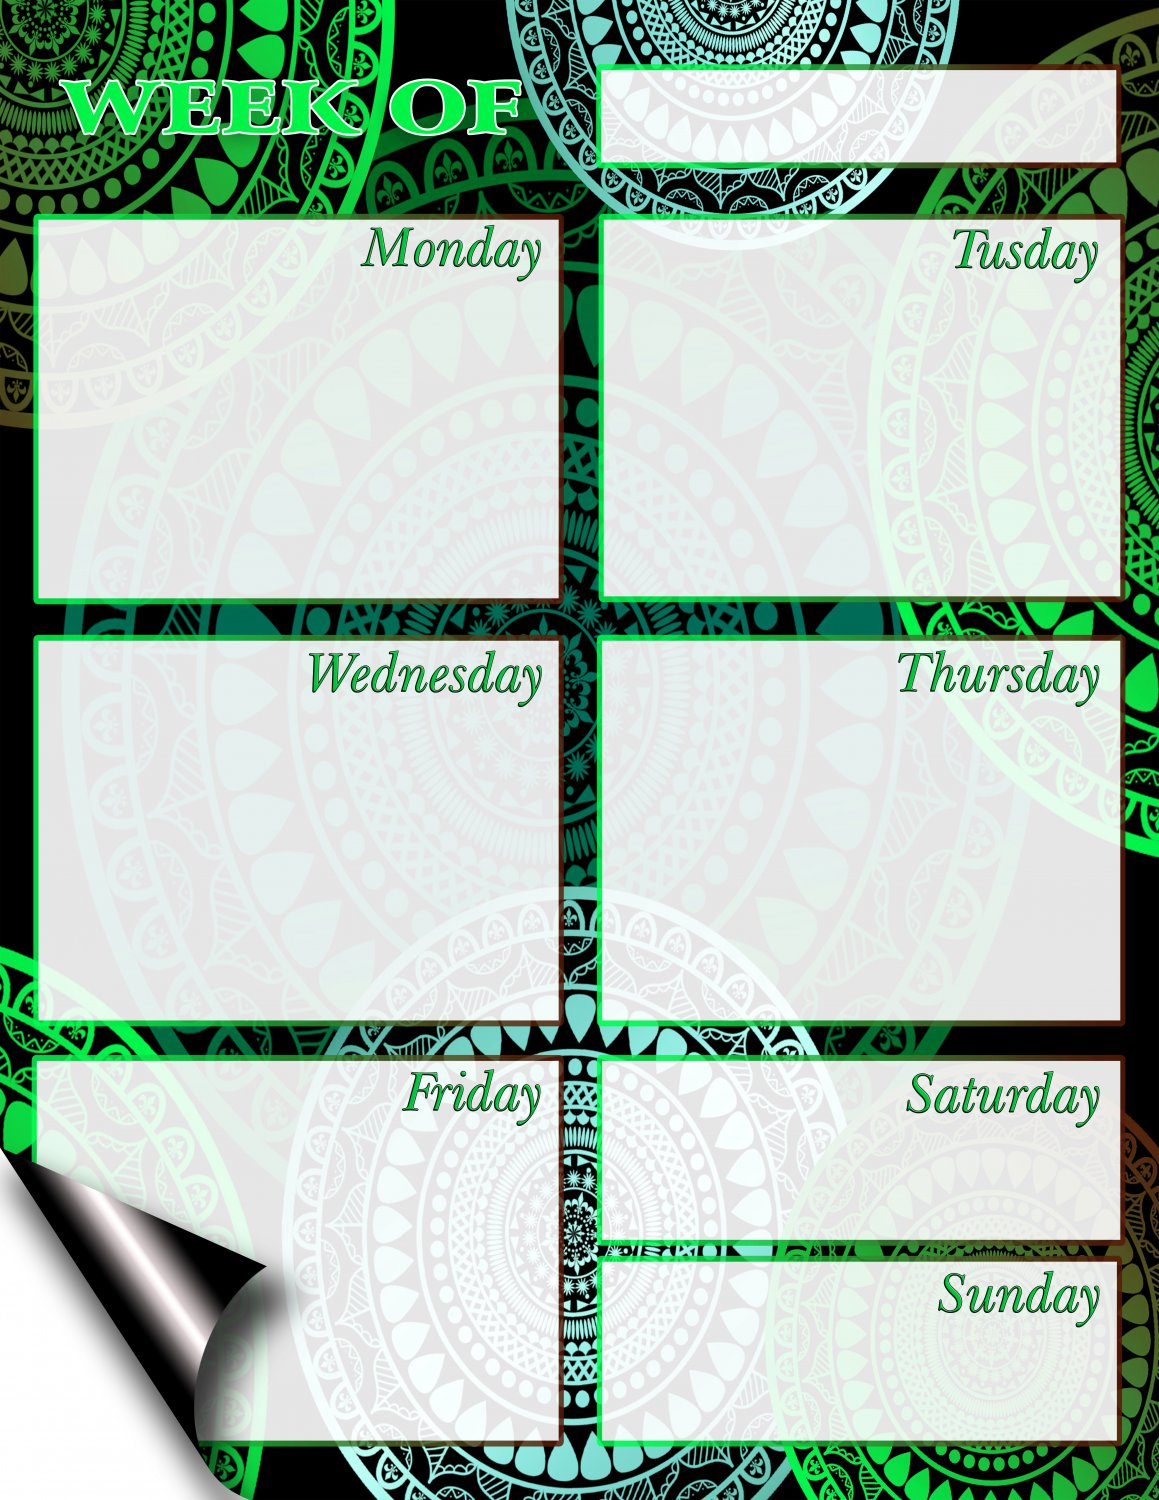 Chore Chart/Weekly Planner/to Do List/Message Board - (Edition #03)) (Weekly Planner)